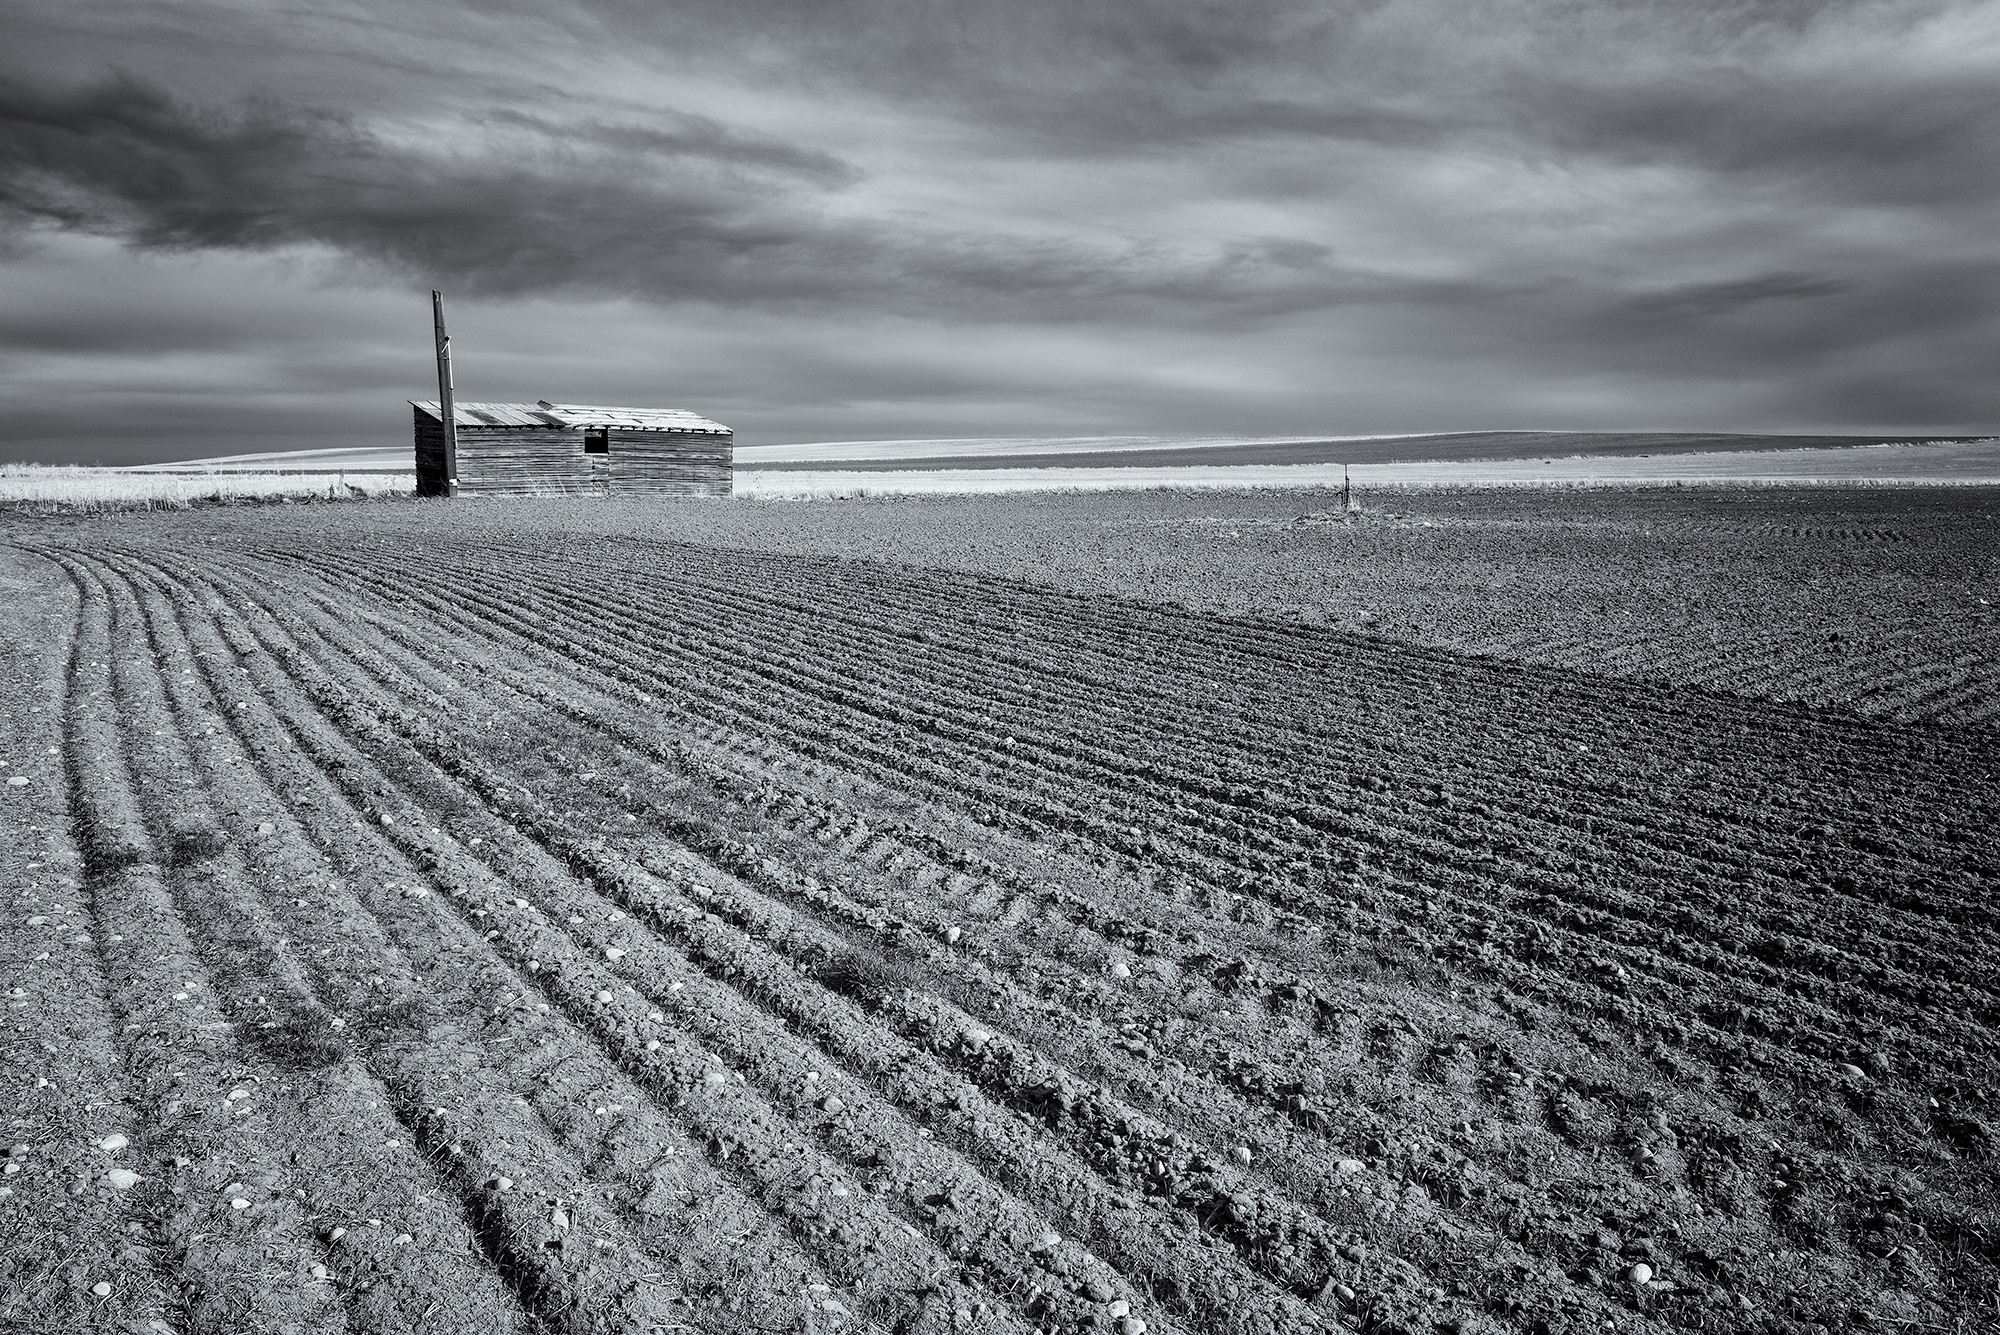 Disappearing Ag. Weld County, Colorado, 2016